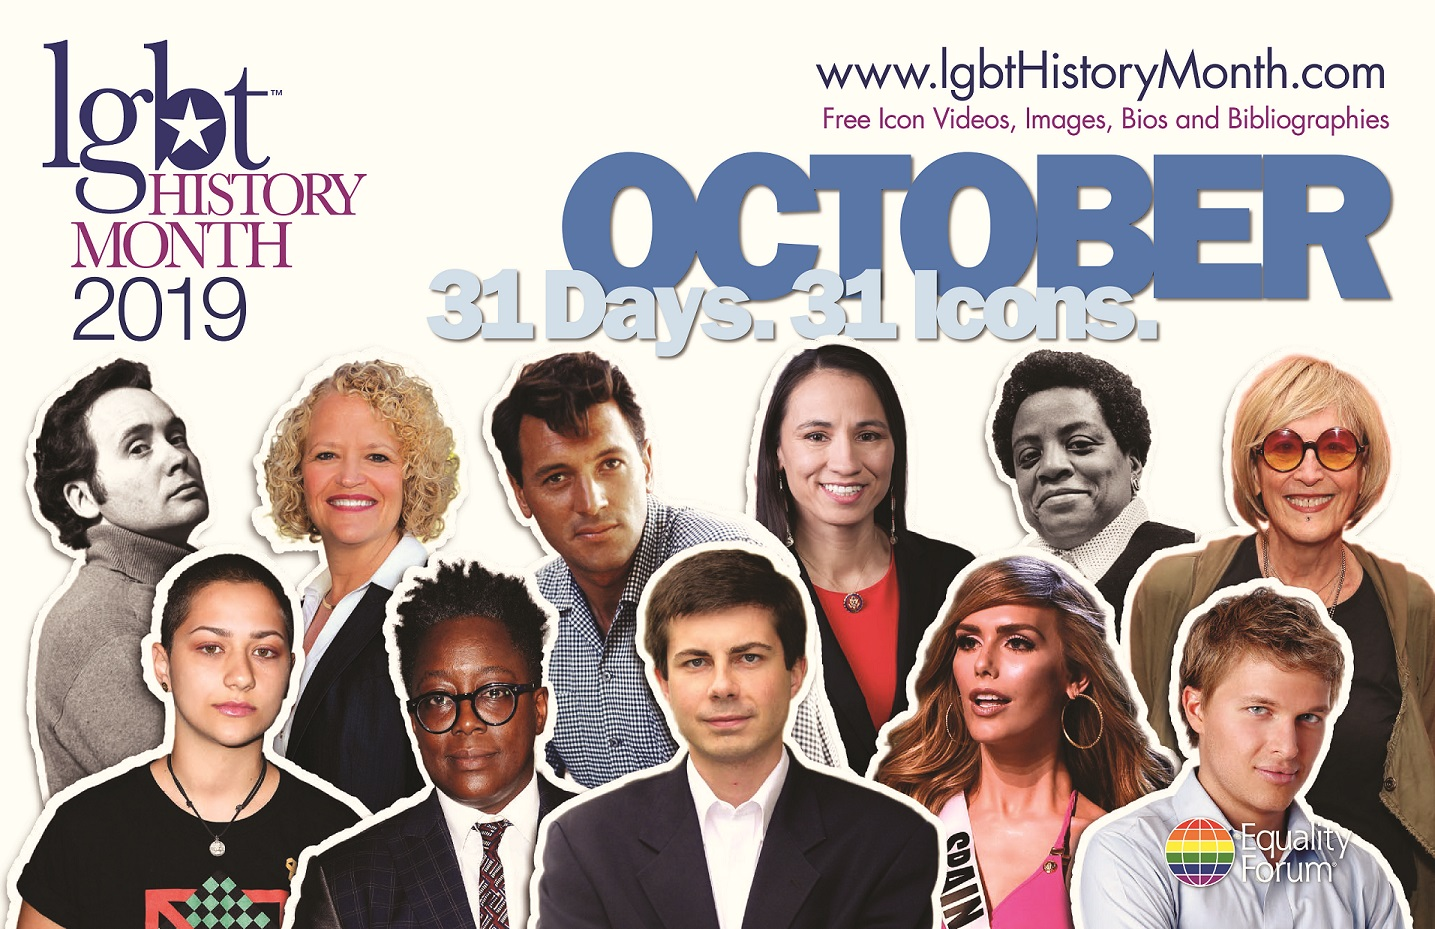 LGBT History Month Icons